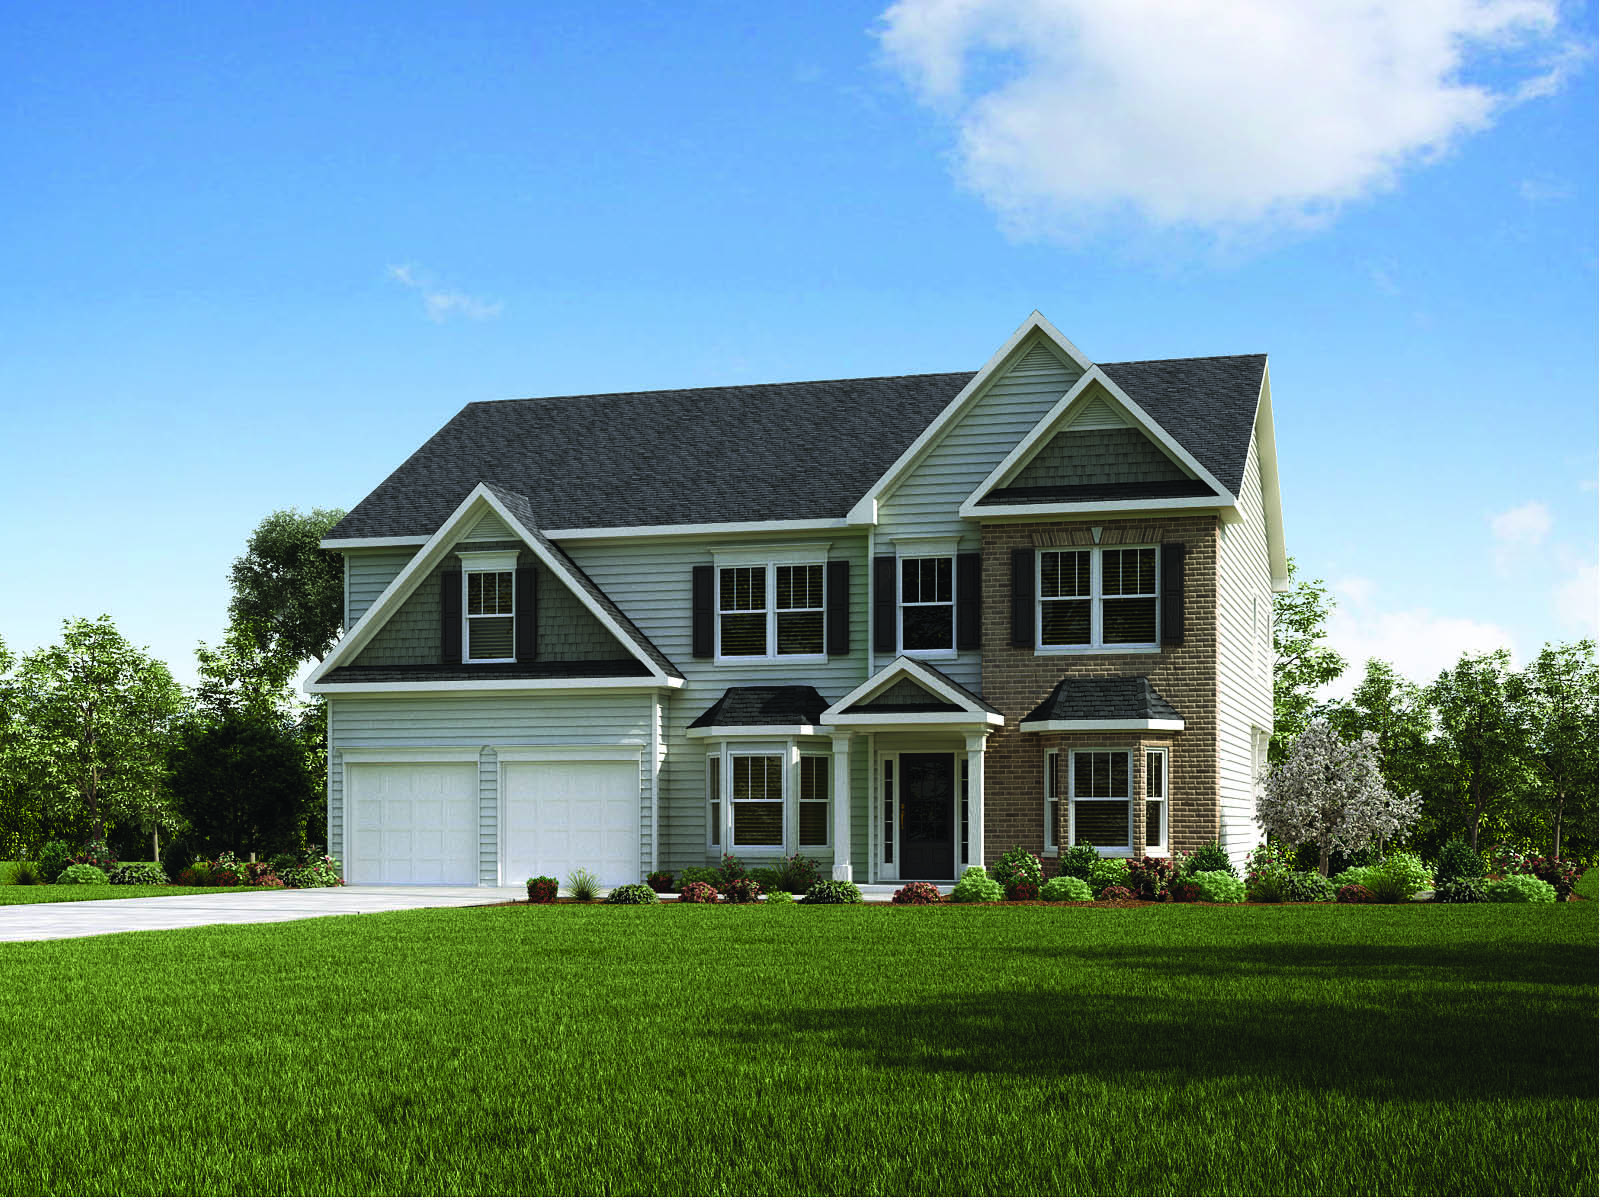 Waterford Model 4br 4ba Homes For Sale In Easley Sc